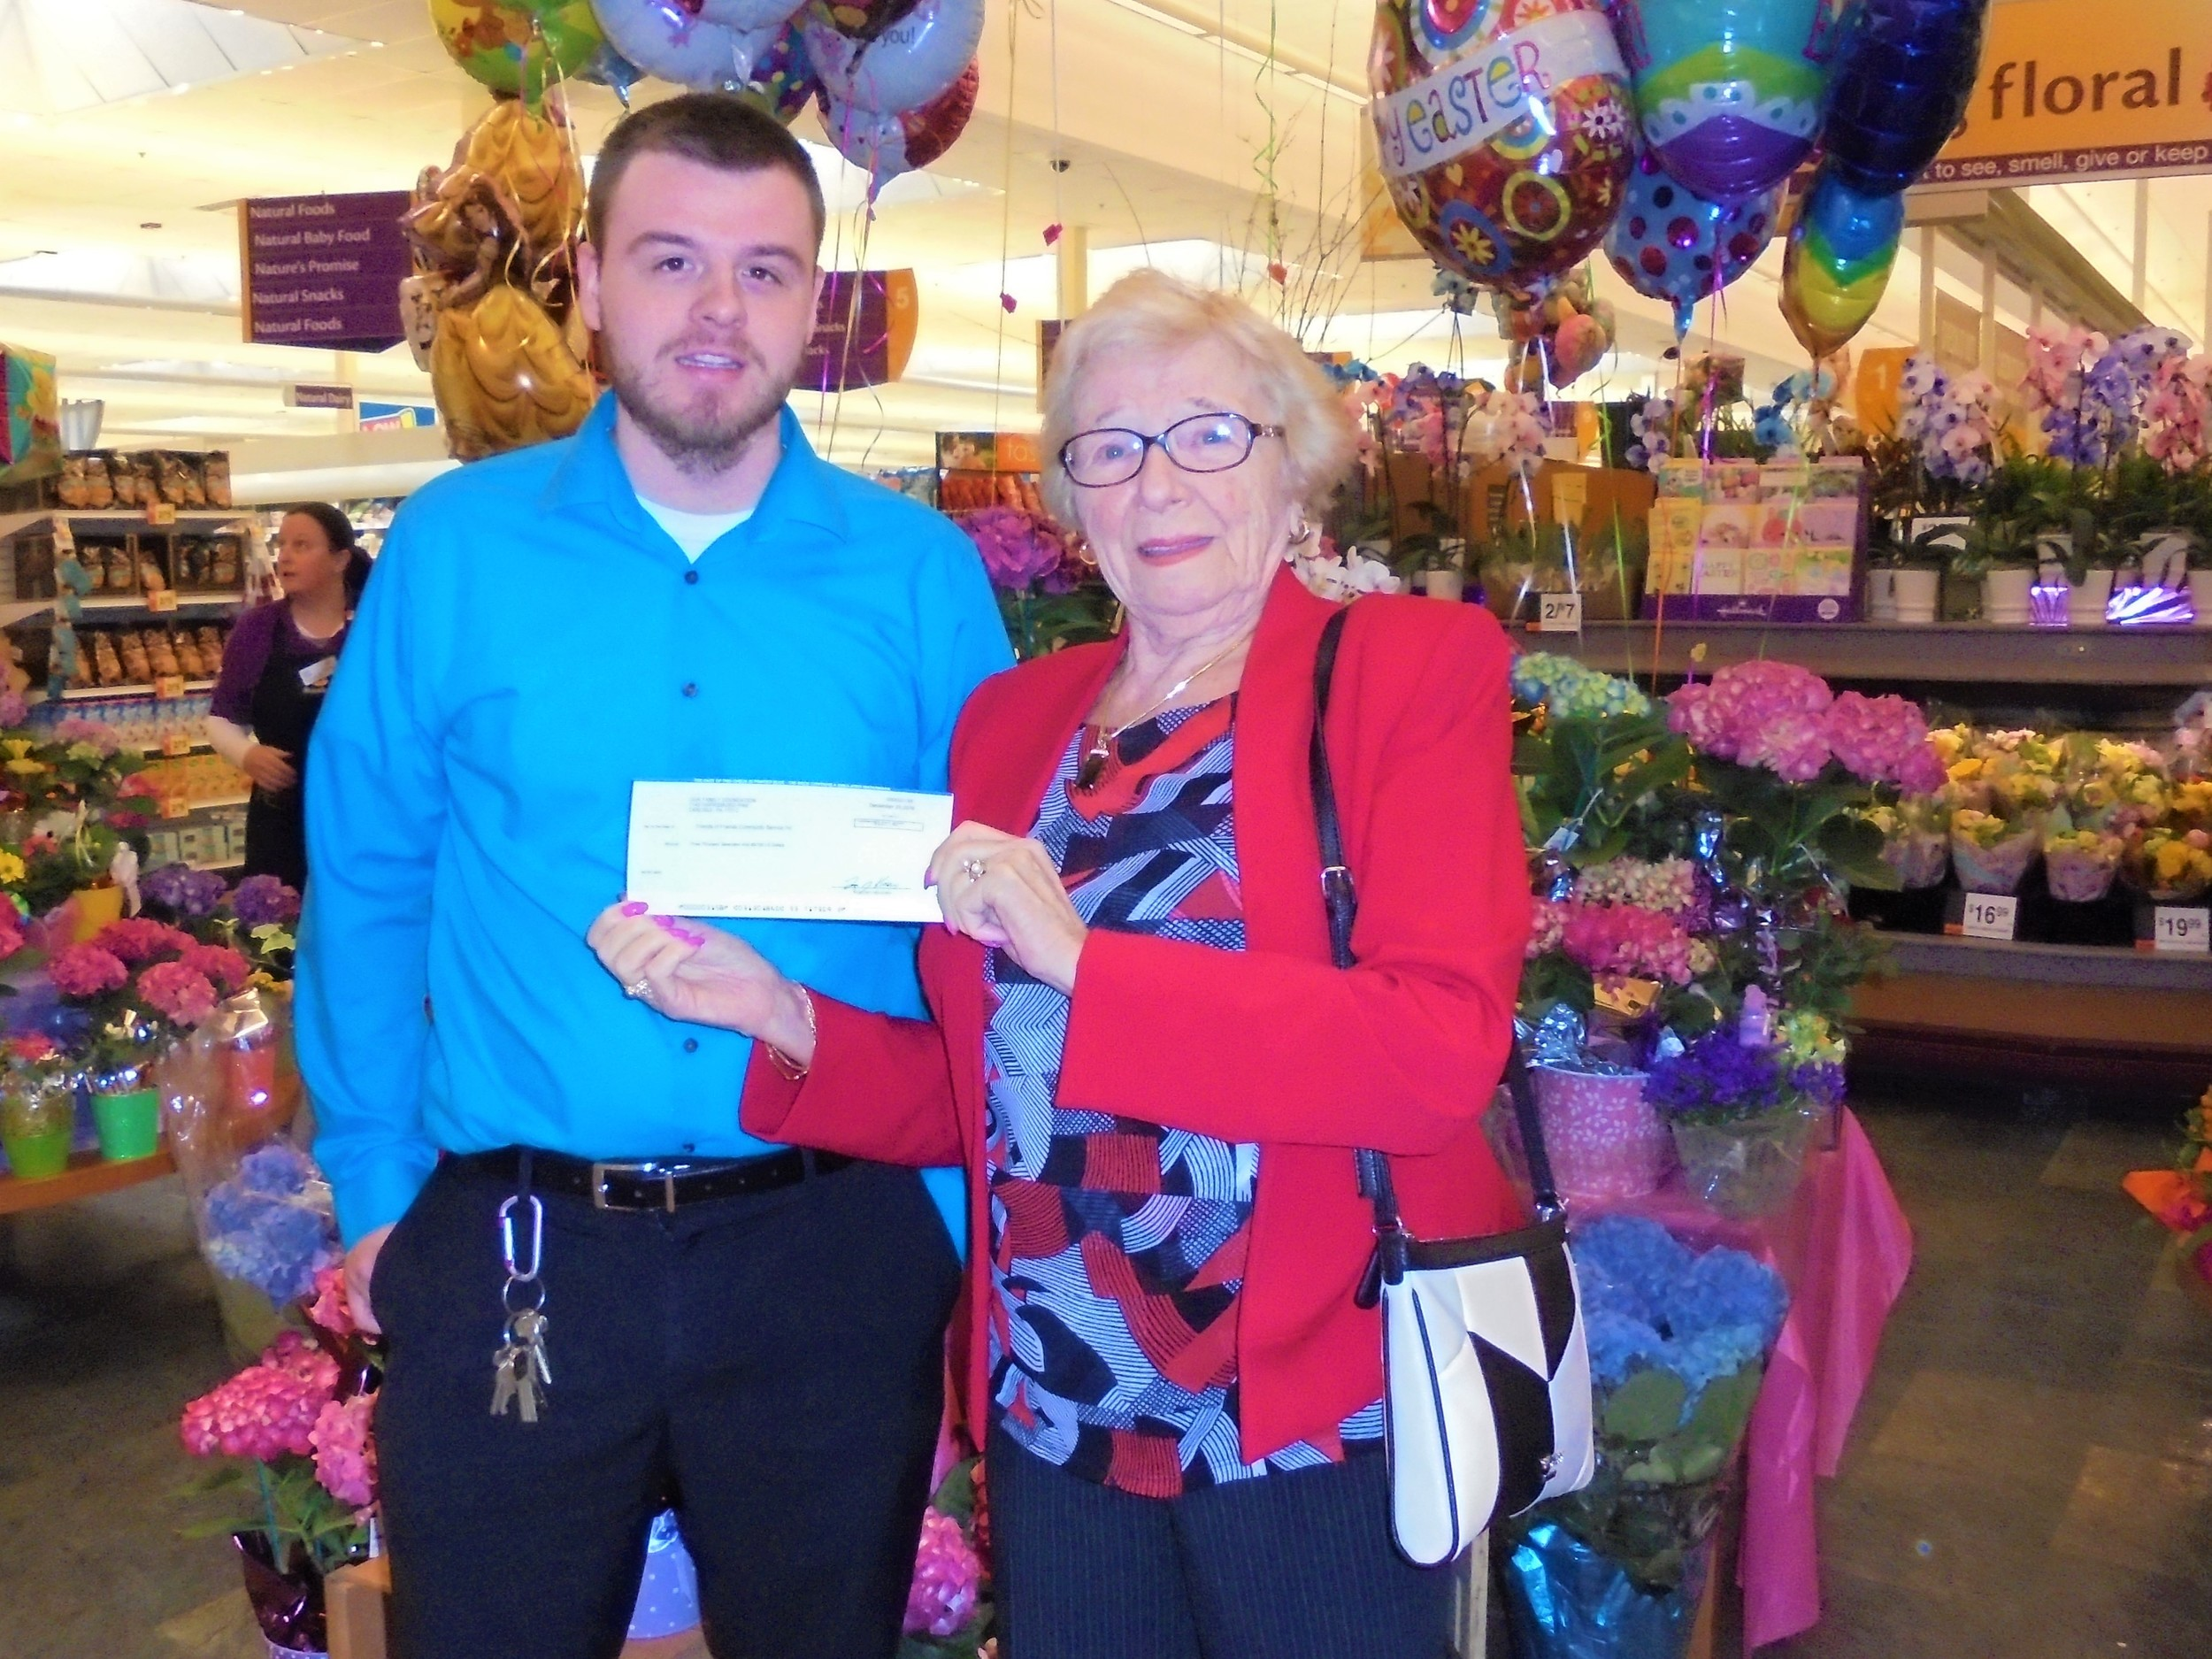 Jimmy Lewis, Customer Service Manager at Stop & Shop on Highland Ave in Seekonk presented Edith Krekorian, President of Friends of Friends a check for $3,017.40